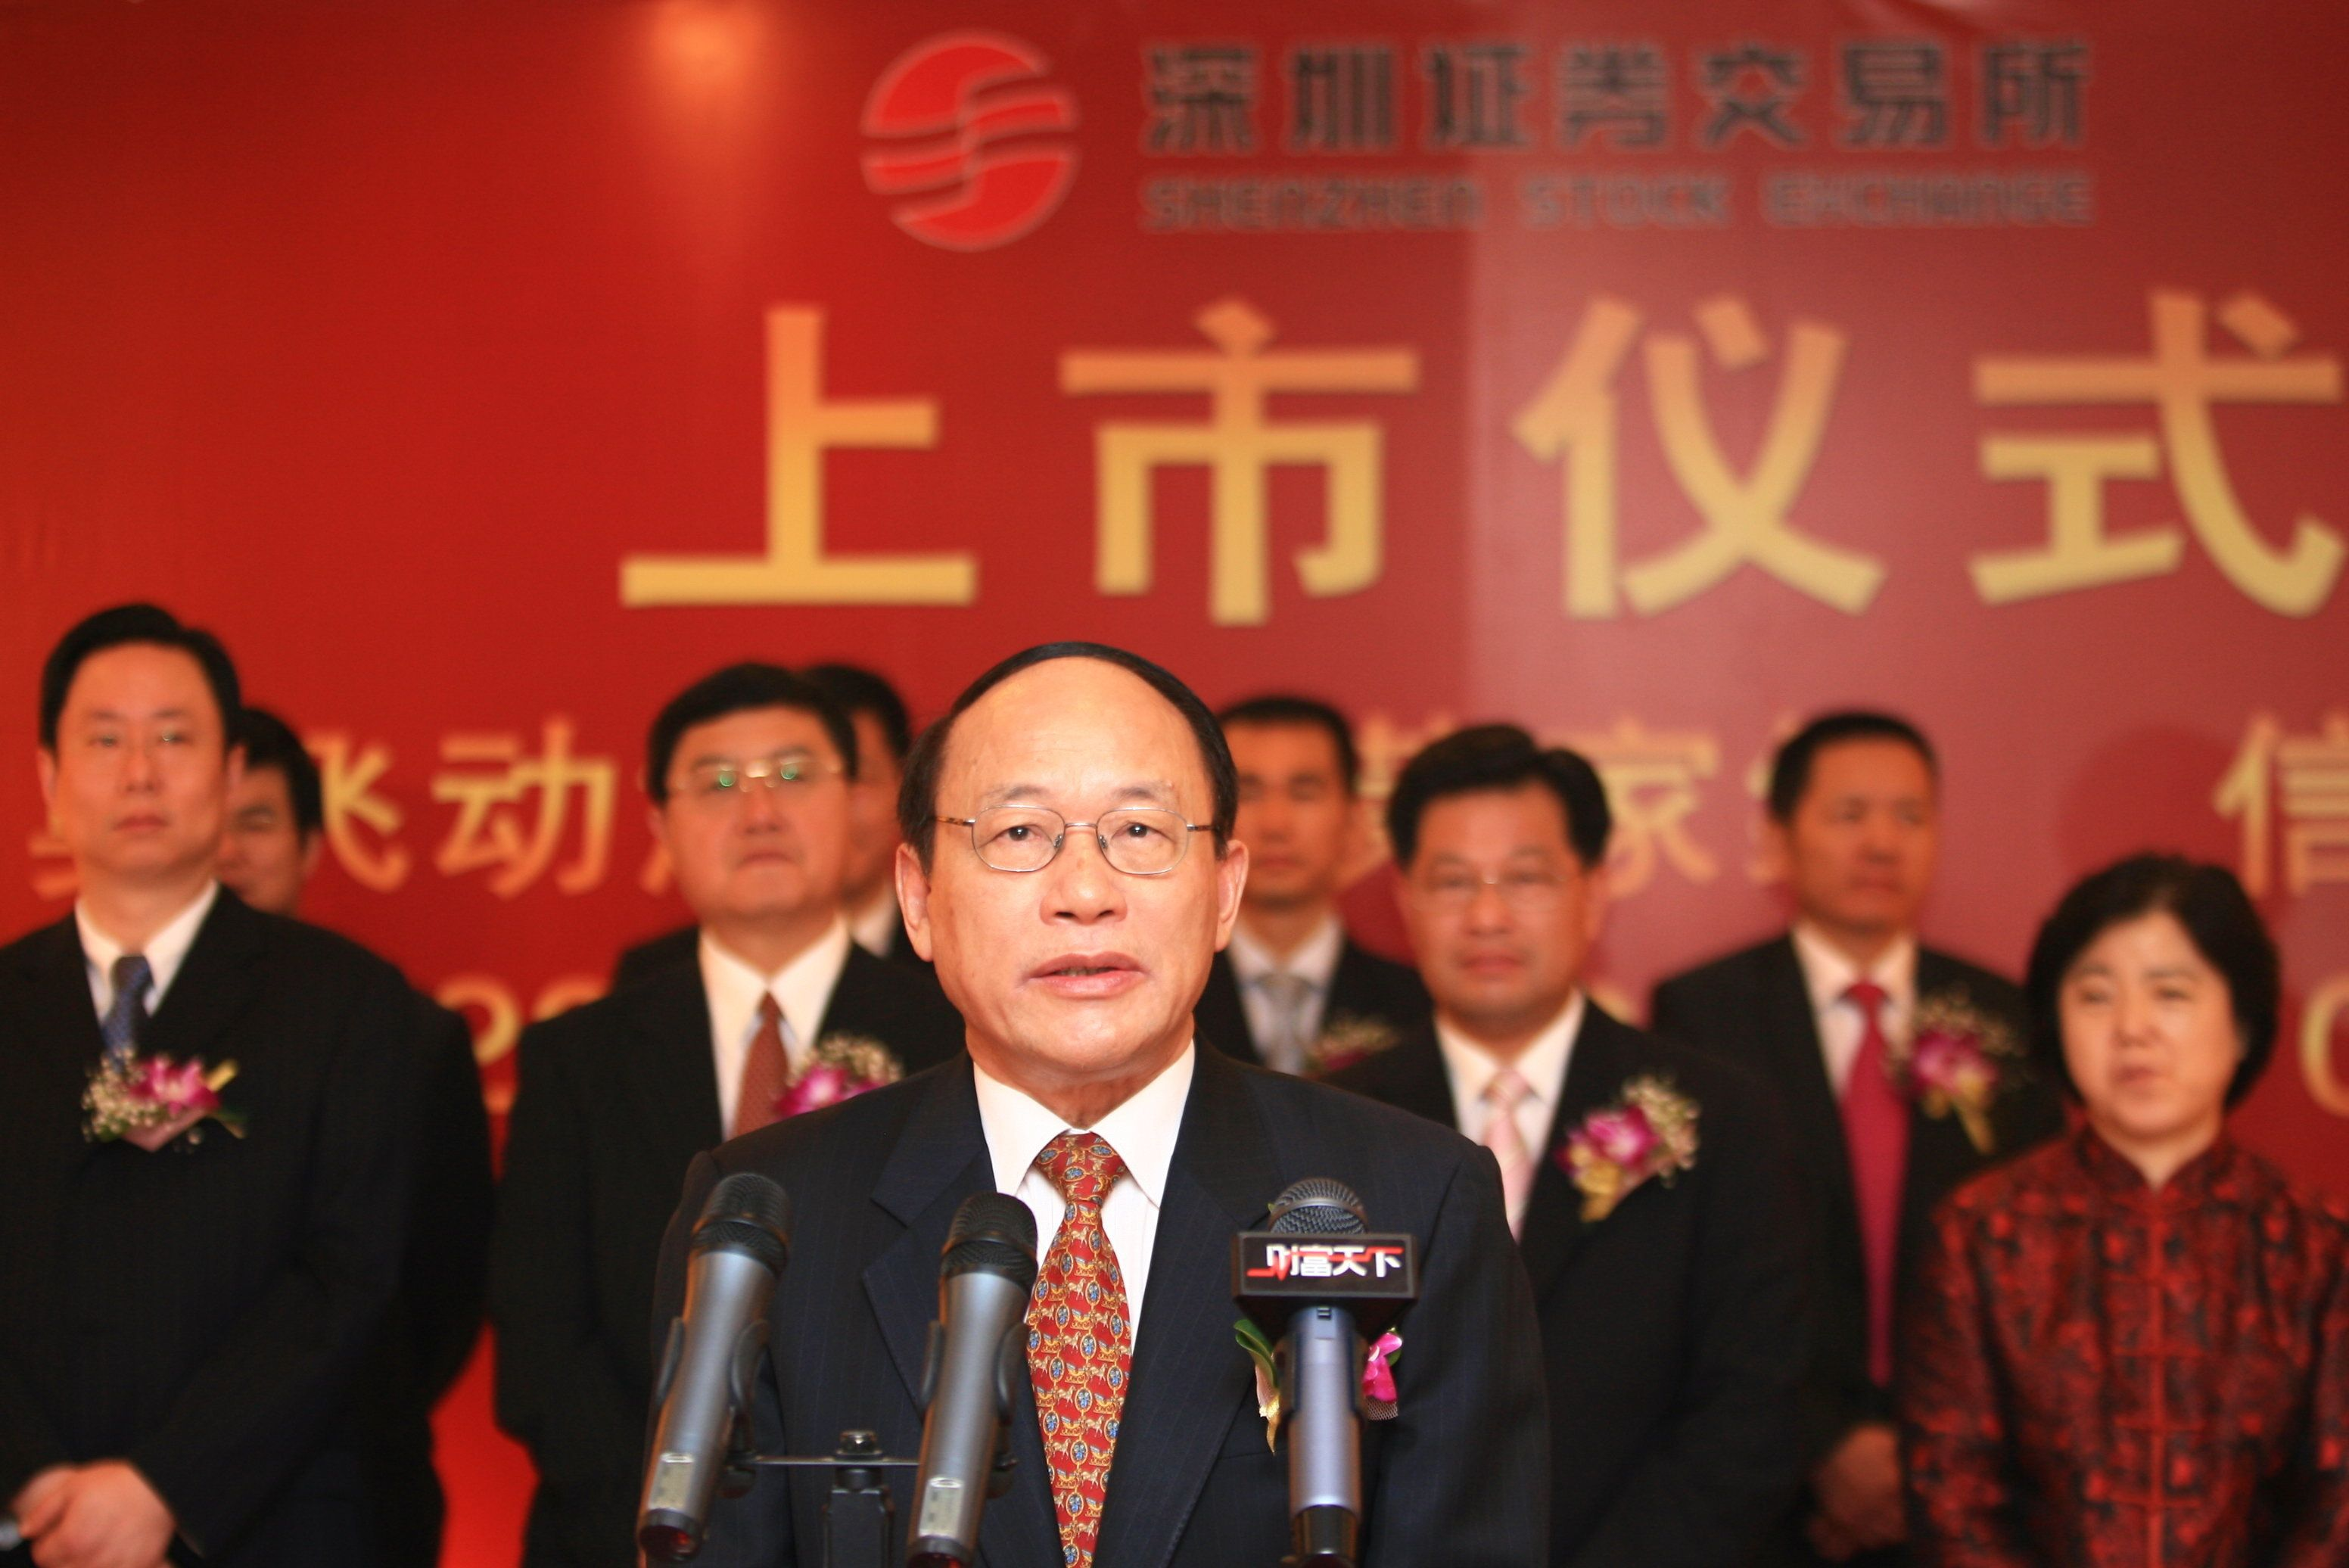 """Ye Chenghai, front, Chairman of Shenzhen Salubris Pharmaceuticals Co., Ltd., speaks during the ceremony for the listing of Salubris at the Shenzhen Stock Exchange in Shenzhen city, south Chinas Guangdong province, 10 September 2009."""